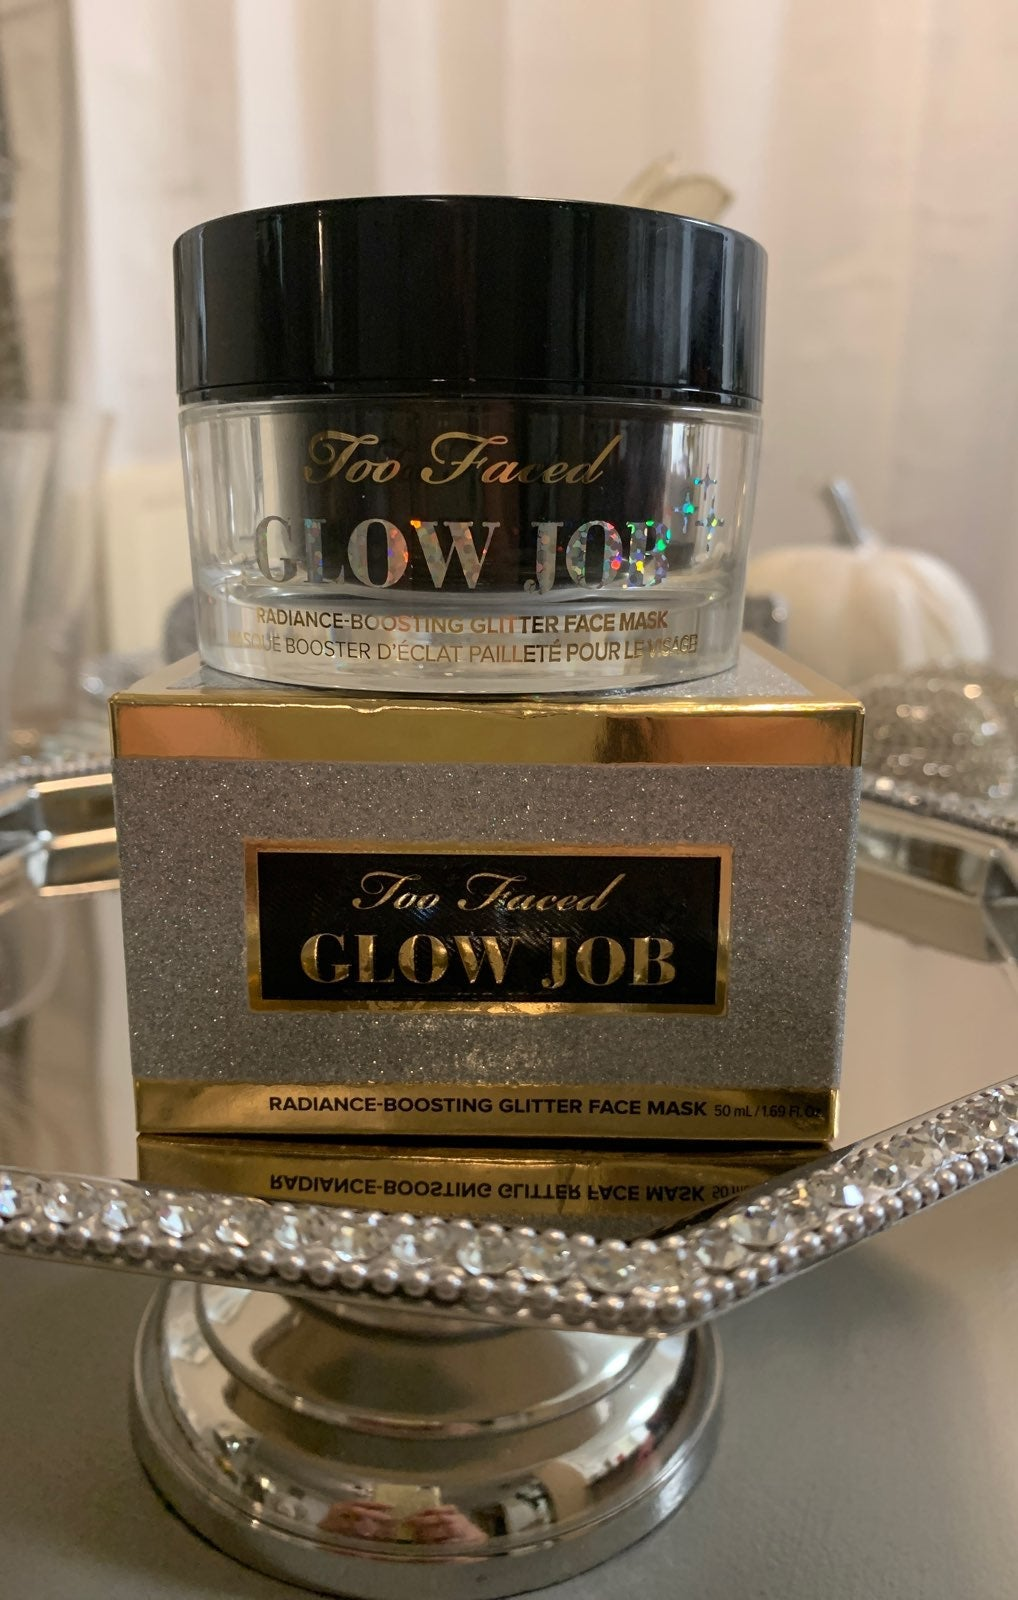 Too Faced Glow Job